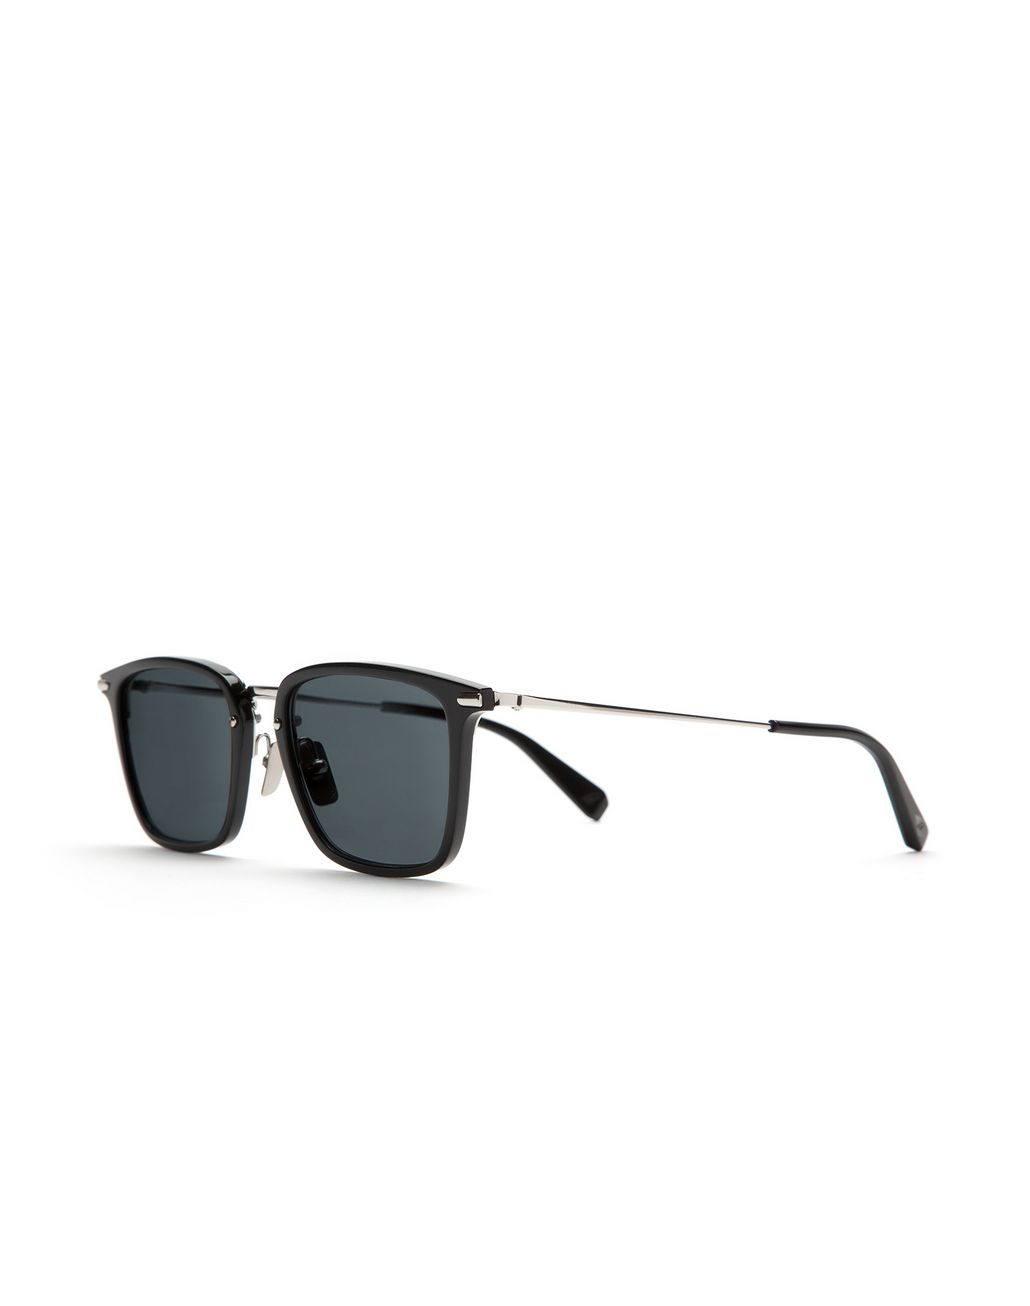 BRIONI Shiny Black Squared Sunglasses with Grey Lenses  Sunglasses Man r